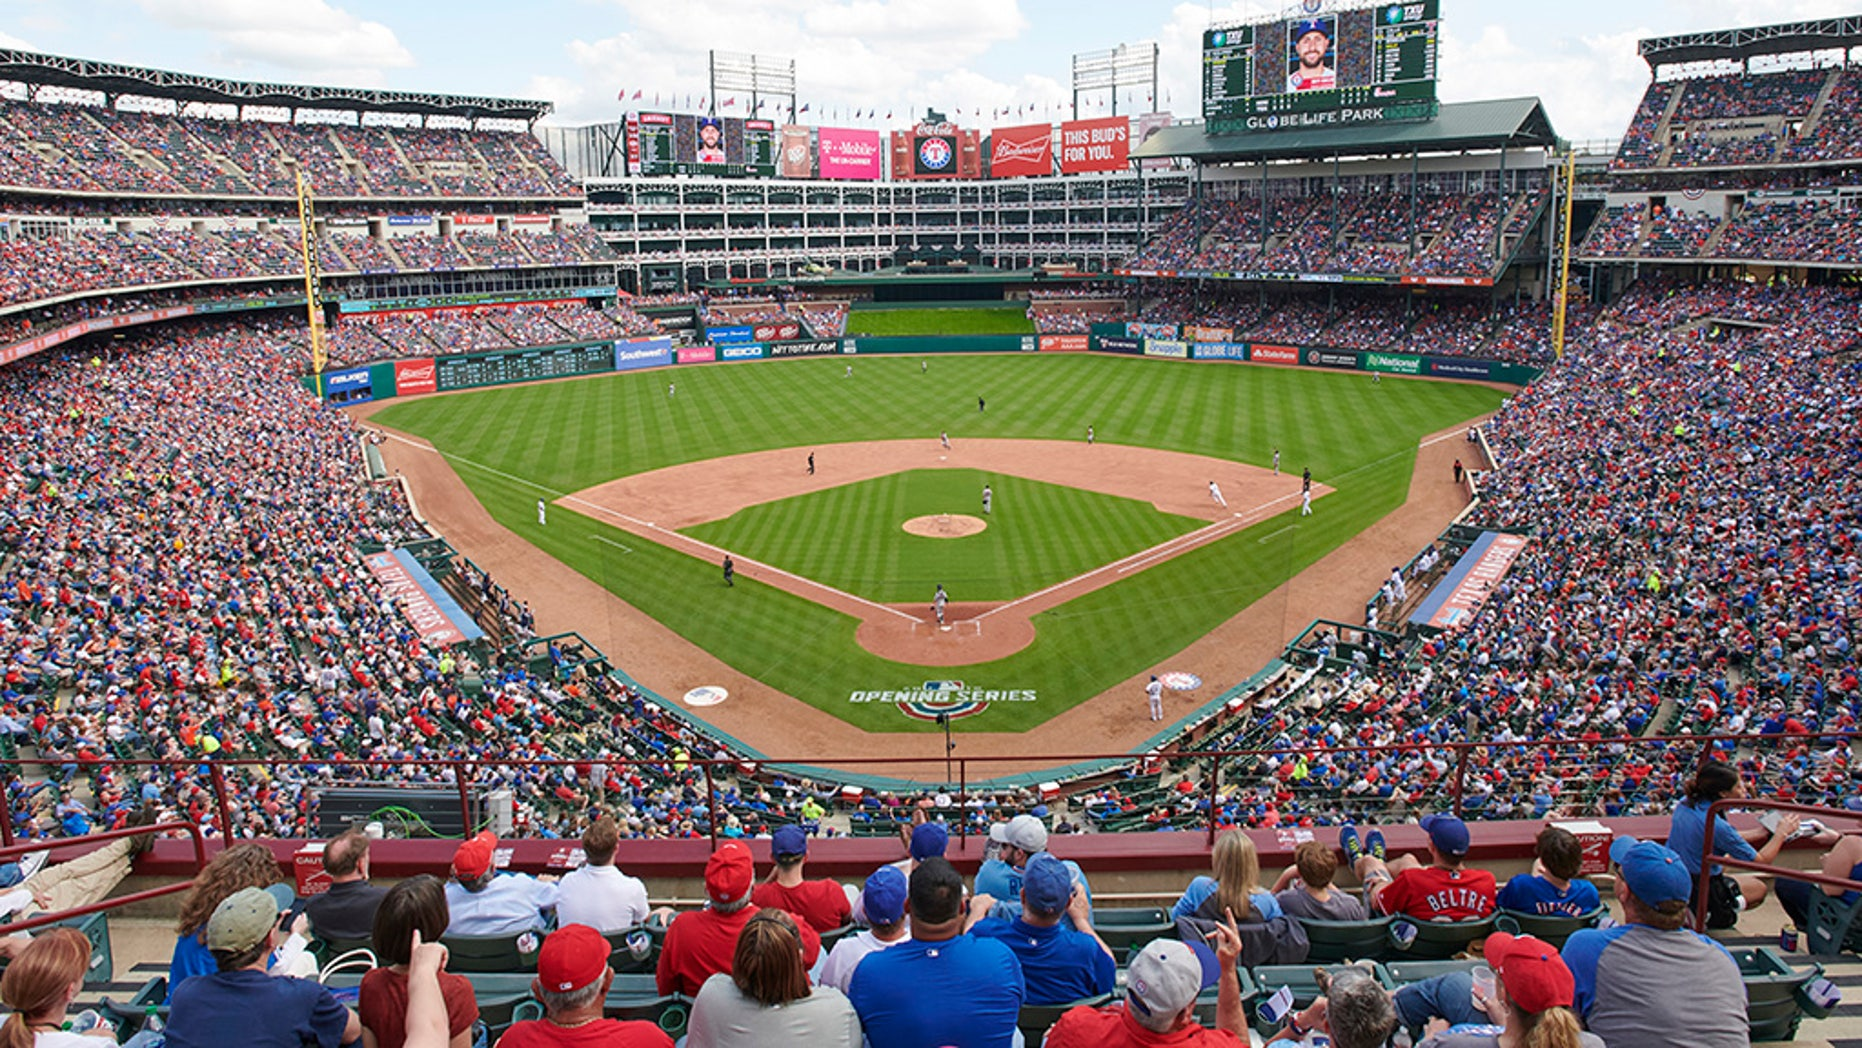 The Texas Rangers pulled off a play on Thursday at Globe Life Park that reportedly hasn't been seen in more than 100 years.